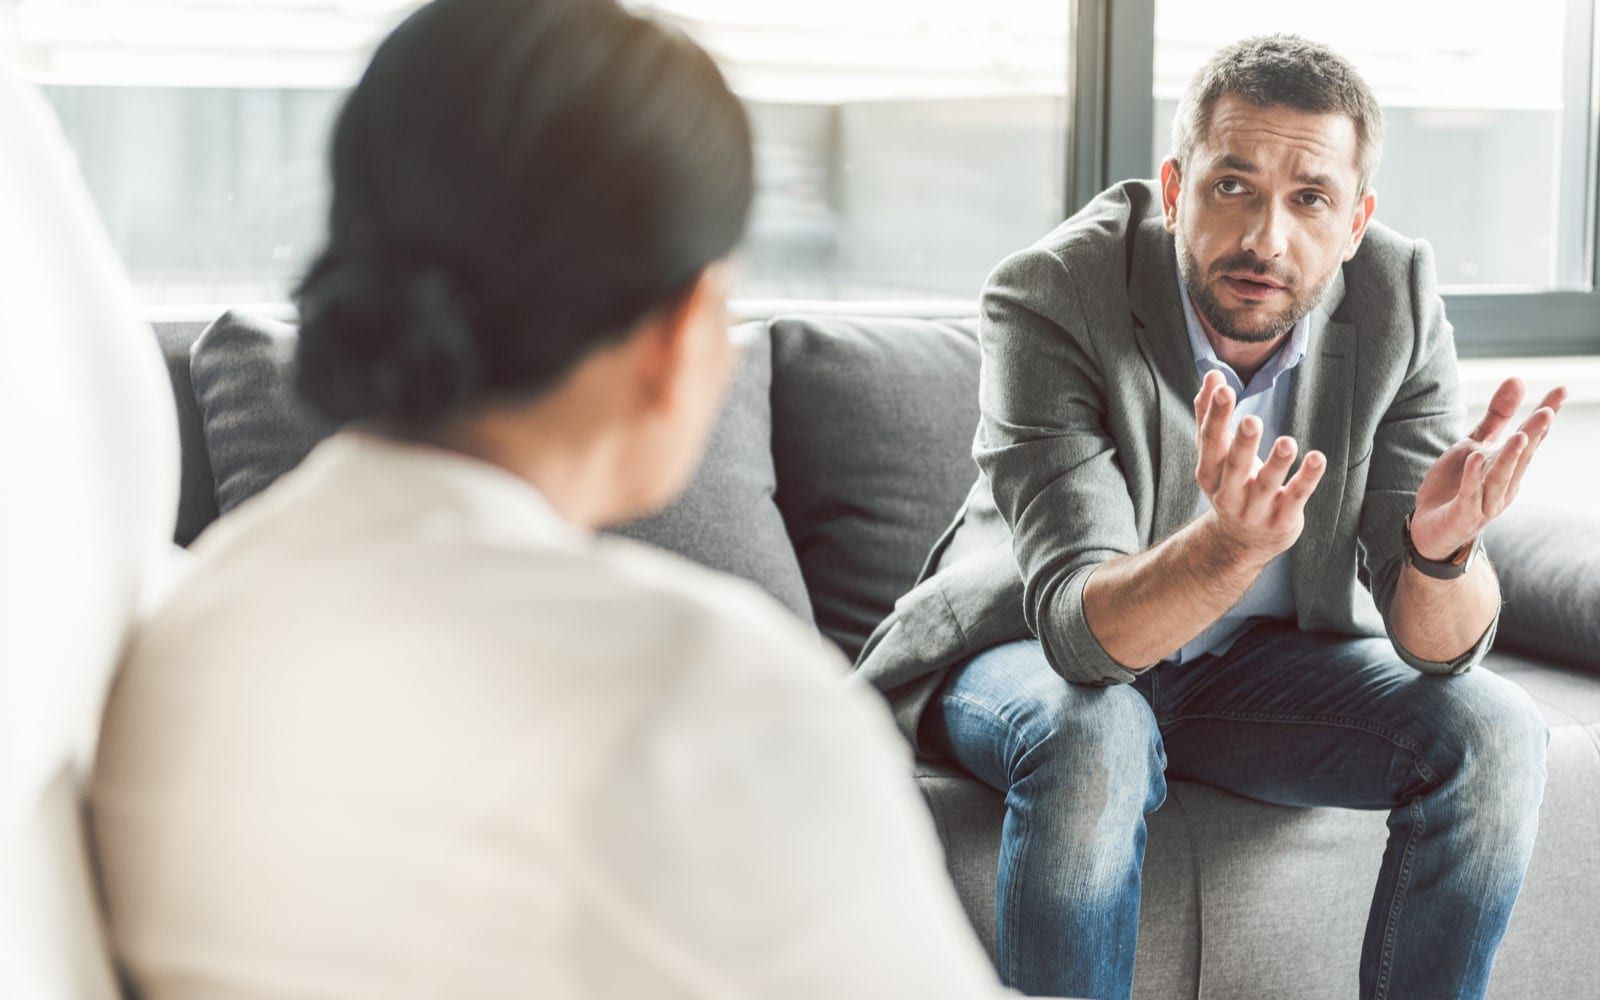 Man speaking to doctor about sensitive subjects